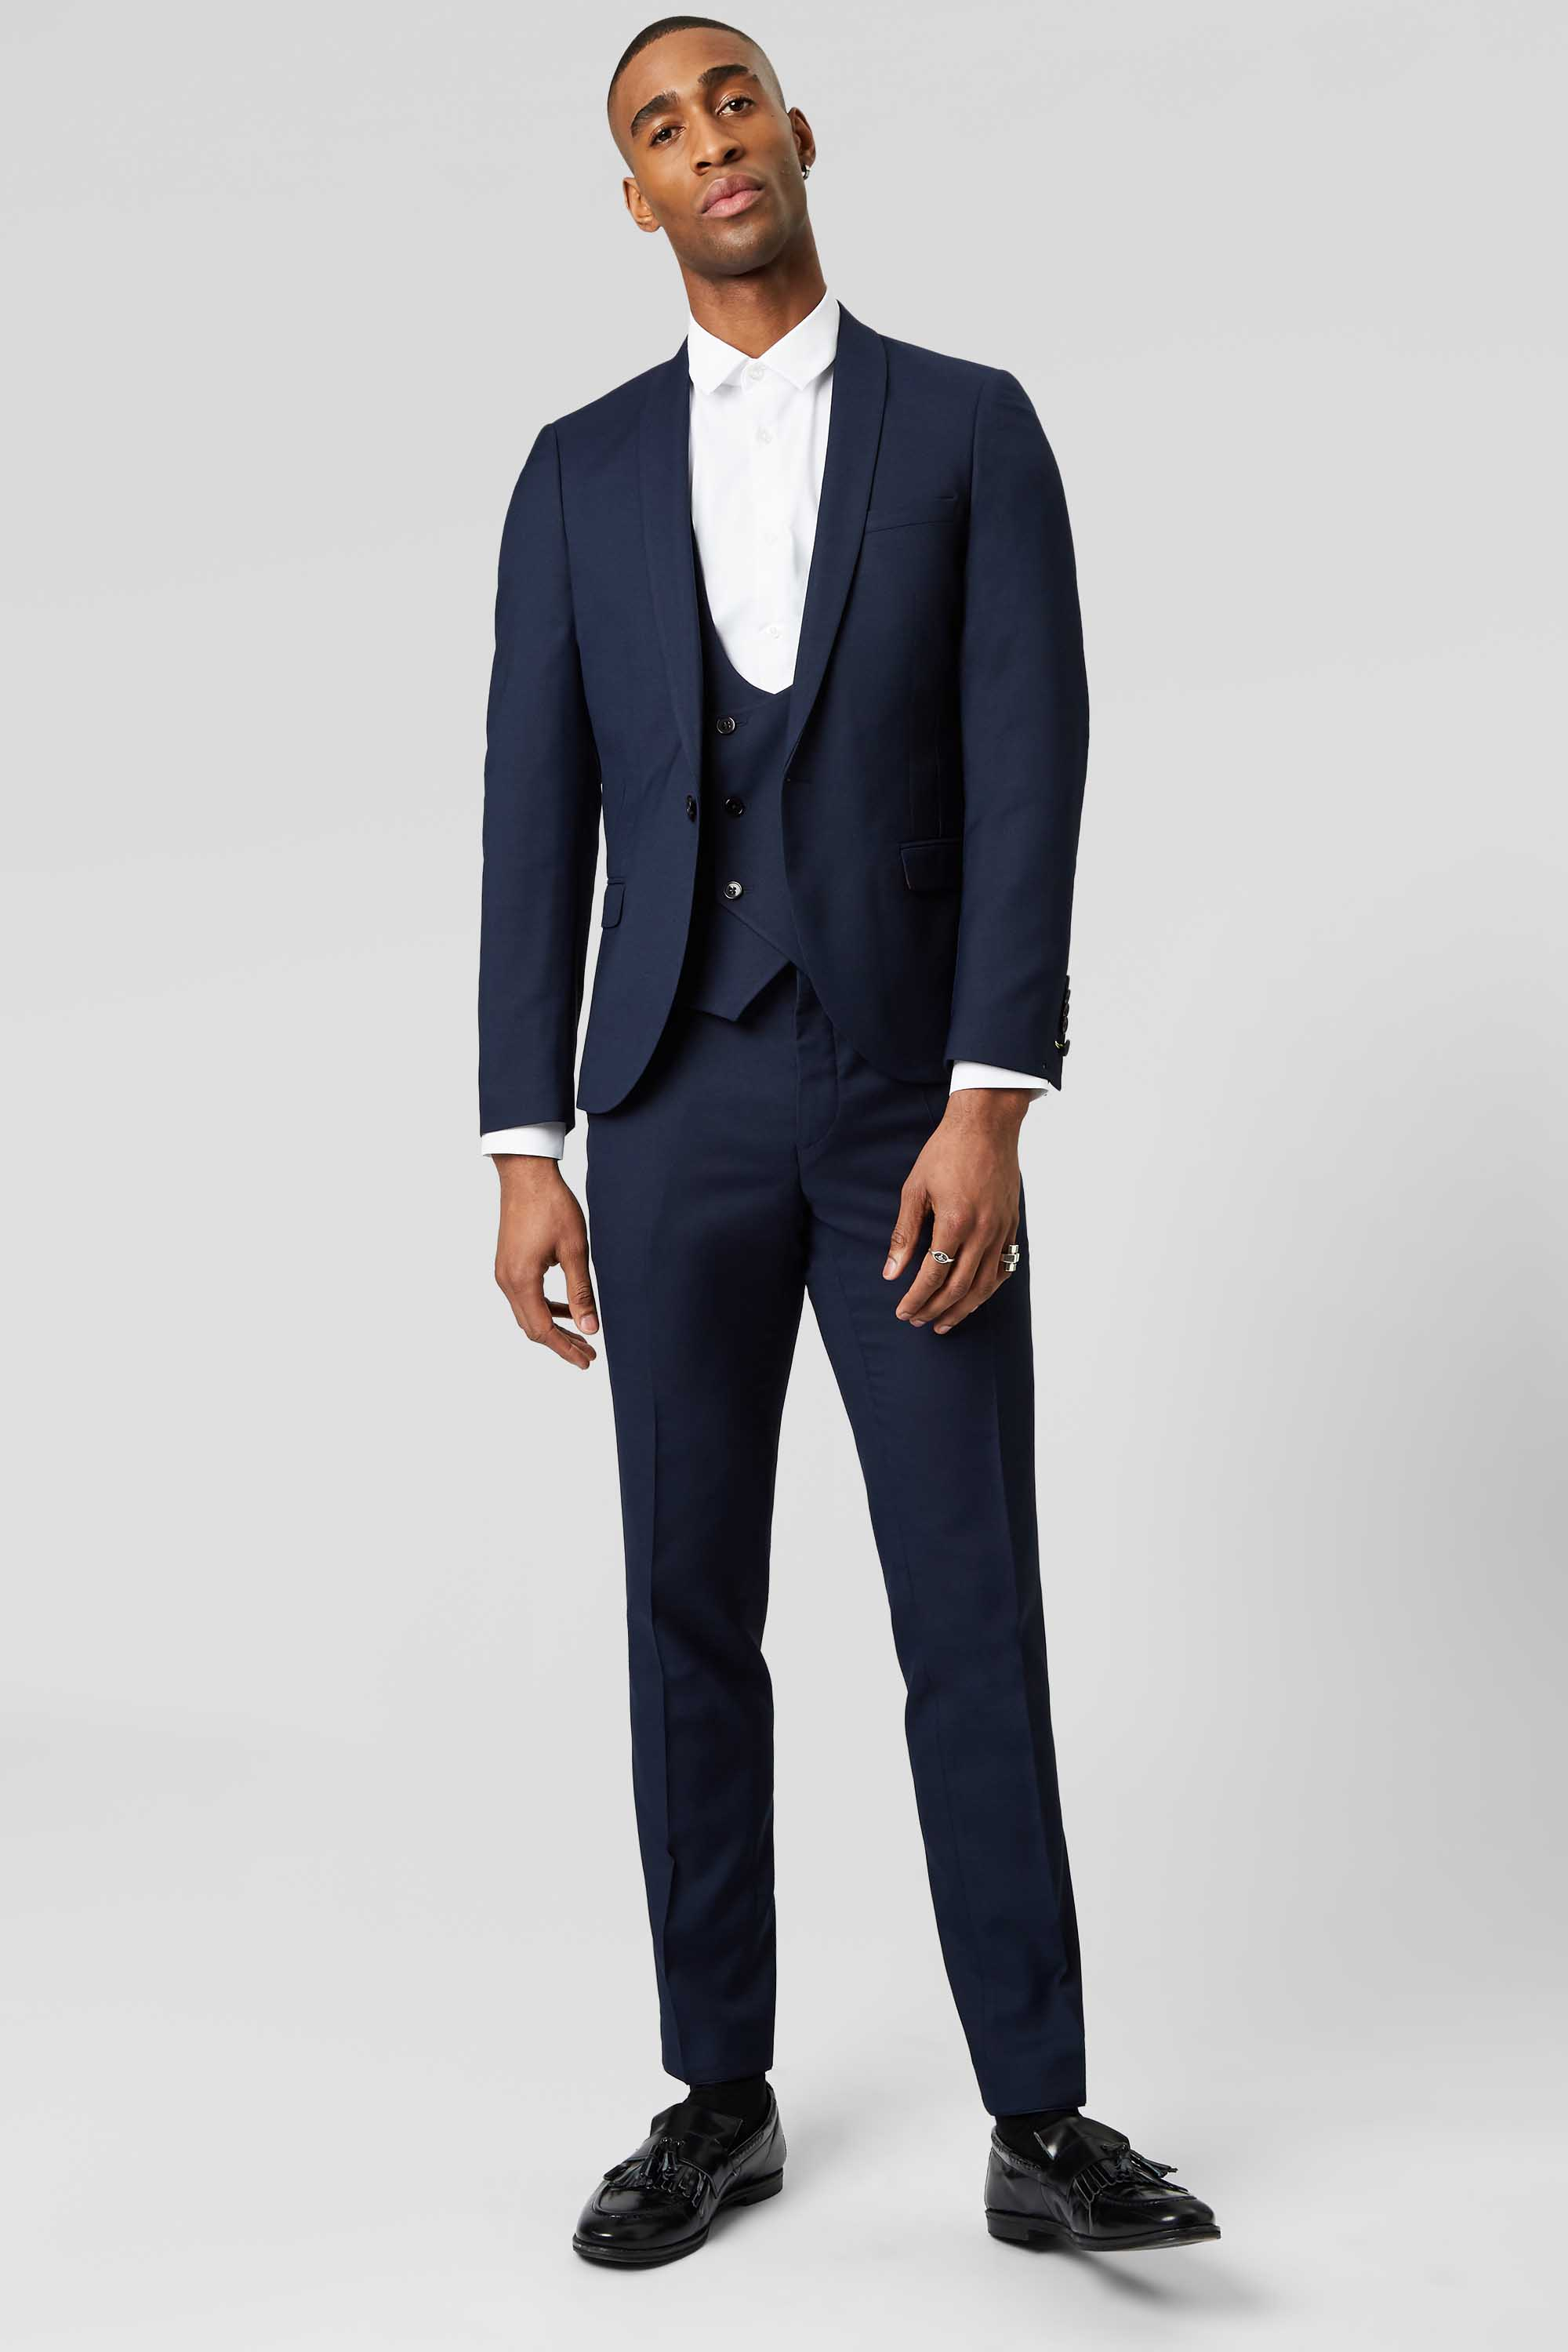 HEMMINGWAY SKINNY FIT SUIT JACKET IN NAVY - NEW ELLROY